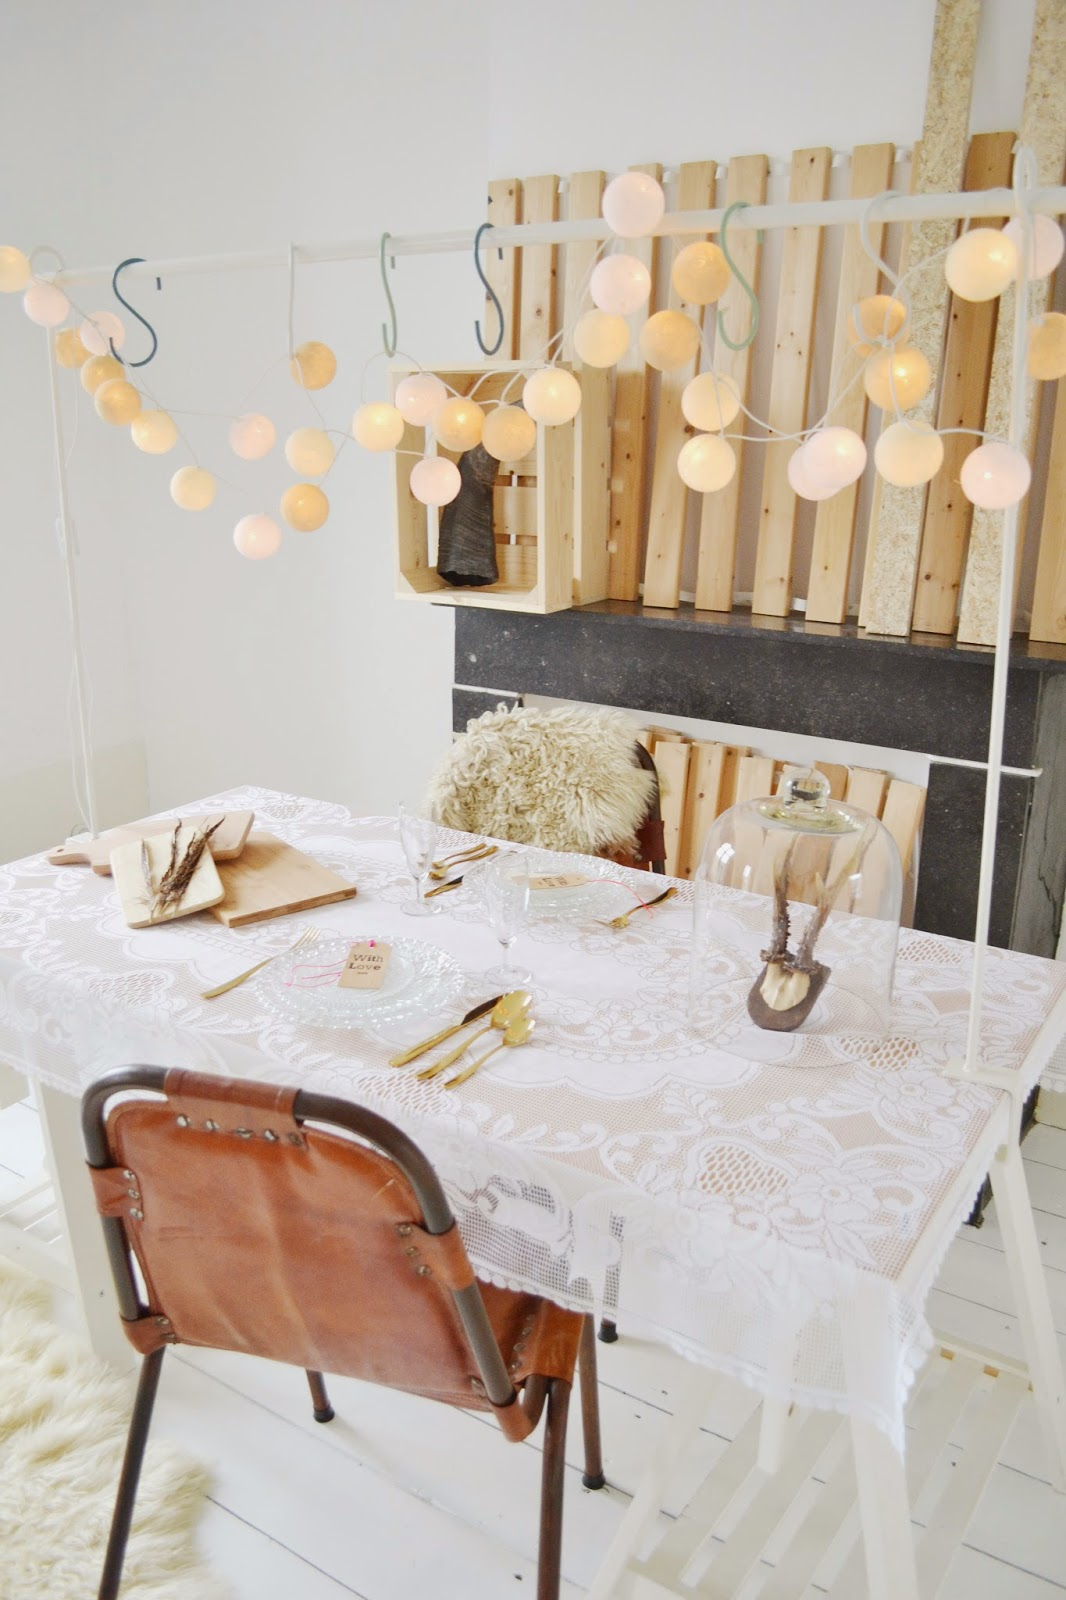 http://deens.nl/woonshop/woonaccessoires/tuinaccessoires/tafelklem-limited-edition-offwhite.html